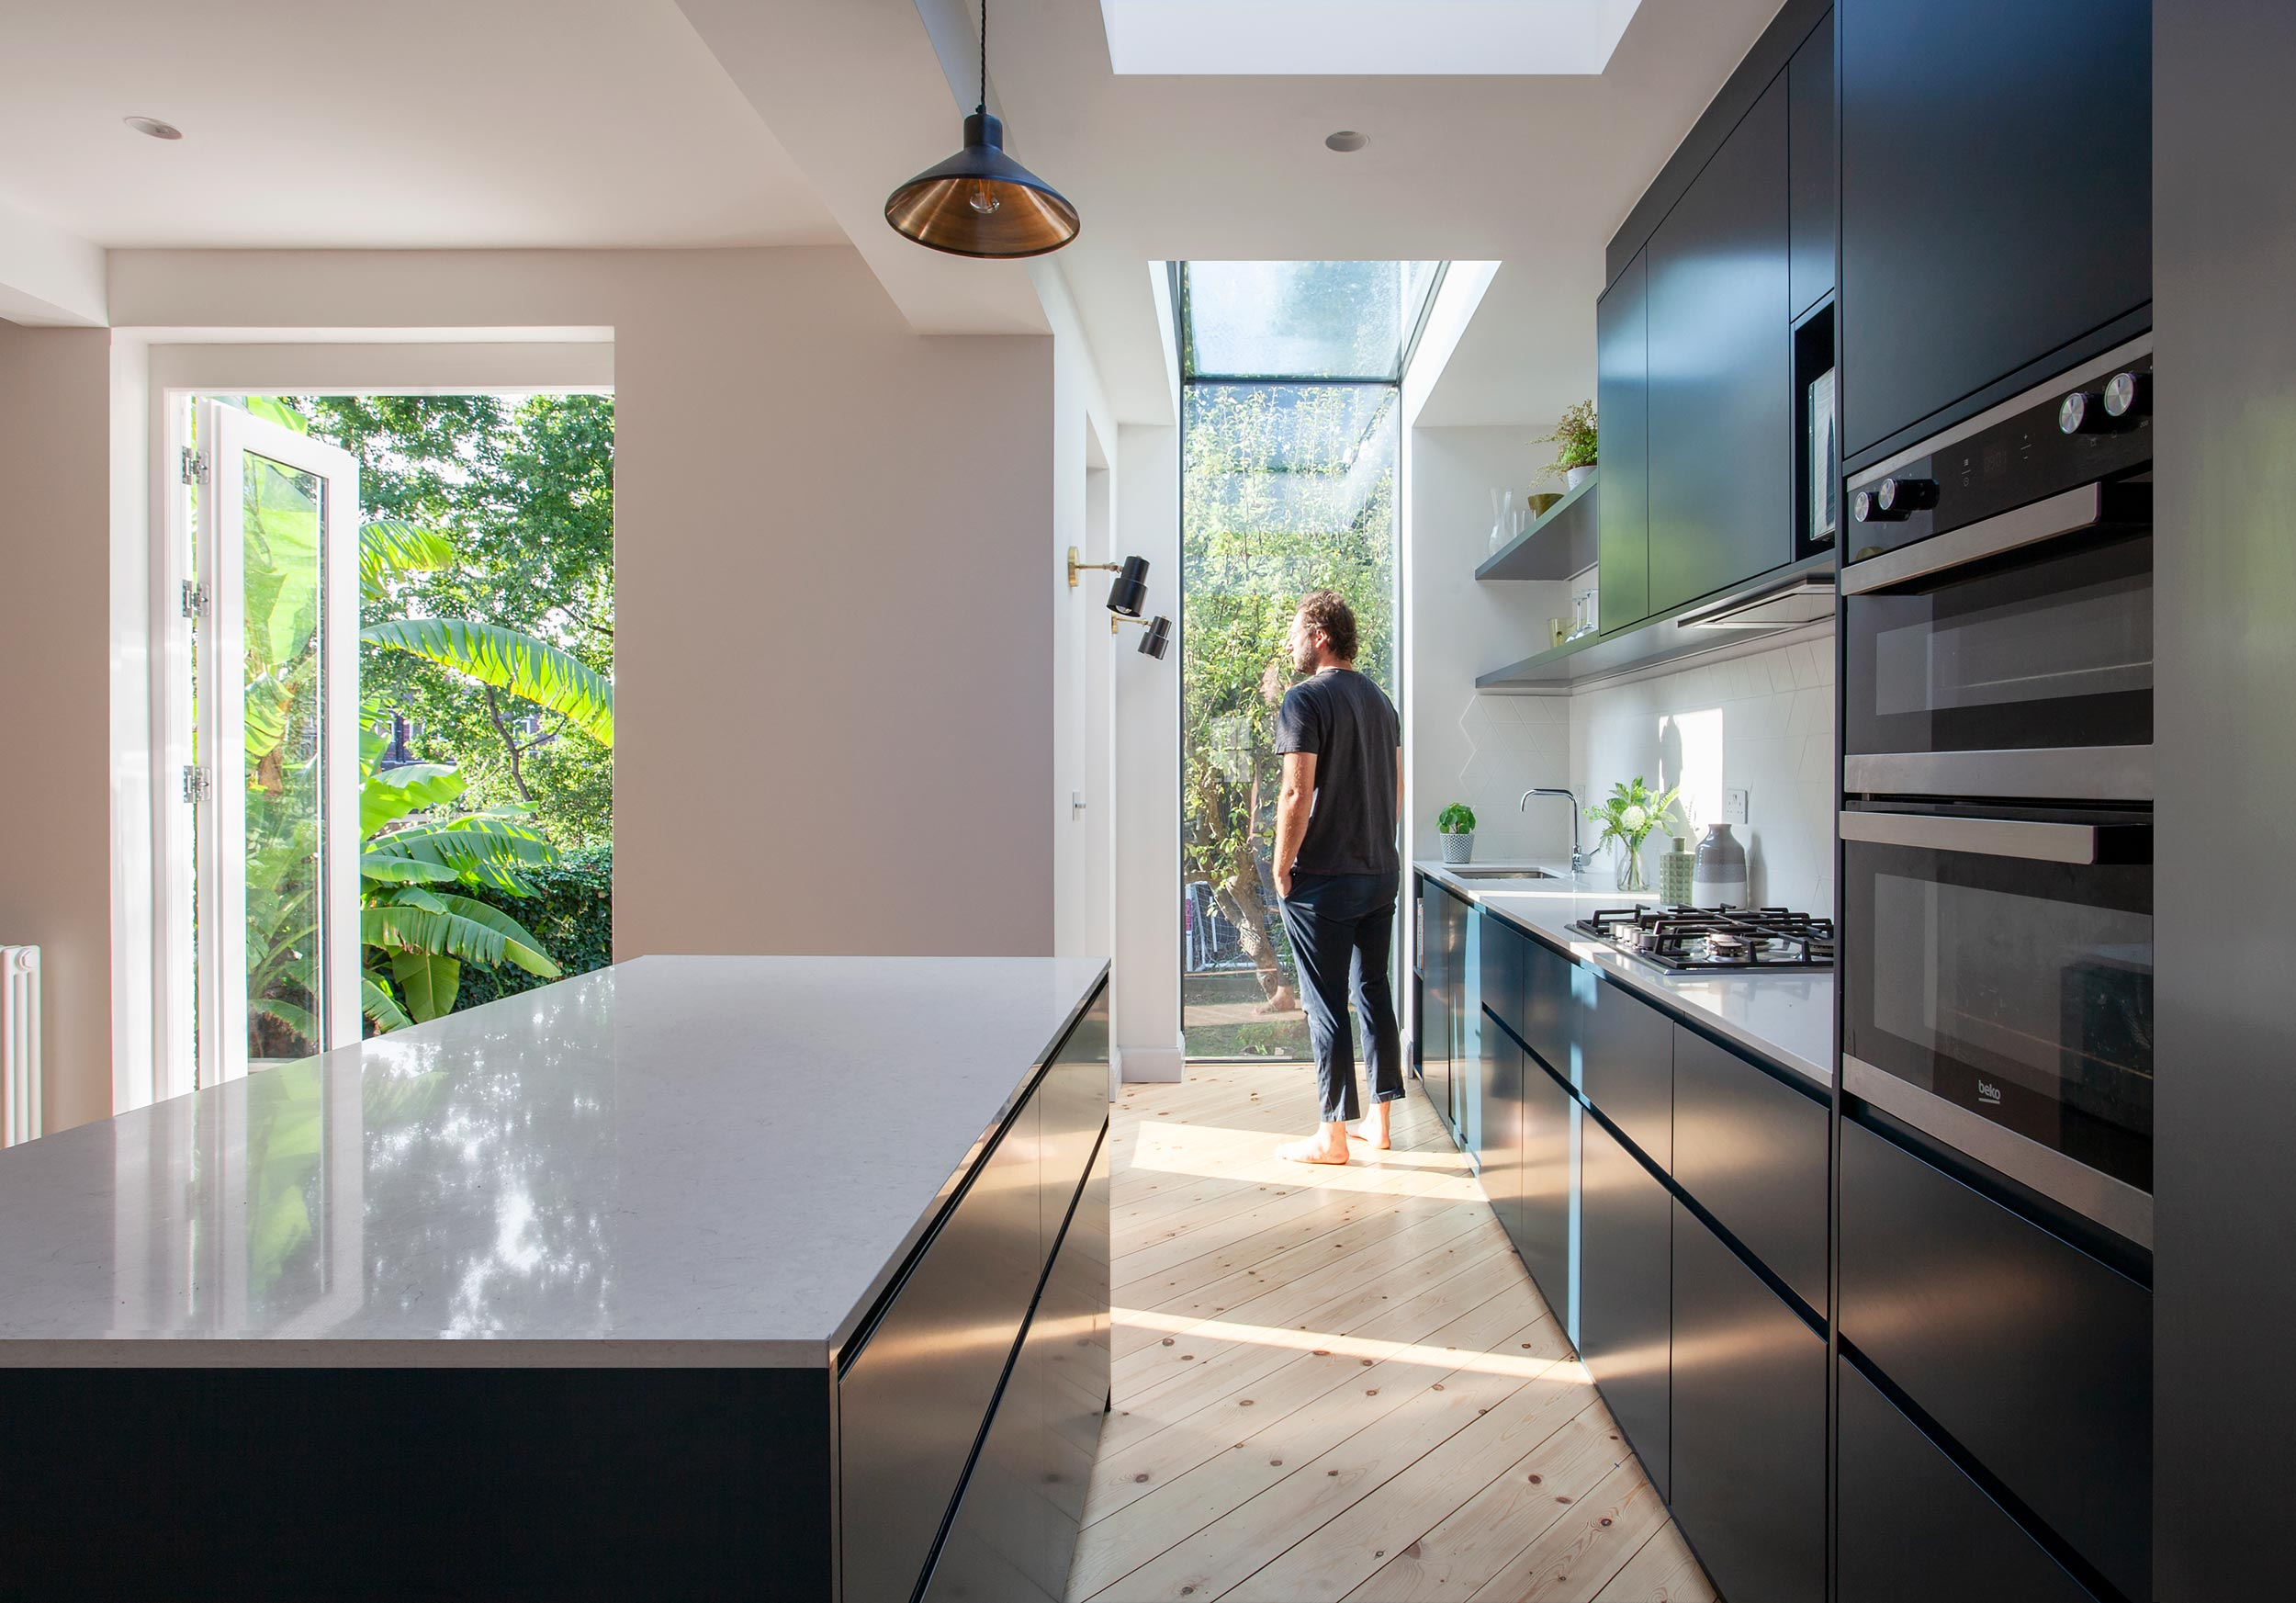 Grade II listed refurbishment and extension of a private house in South Kensington